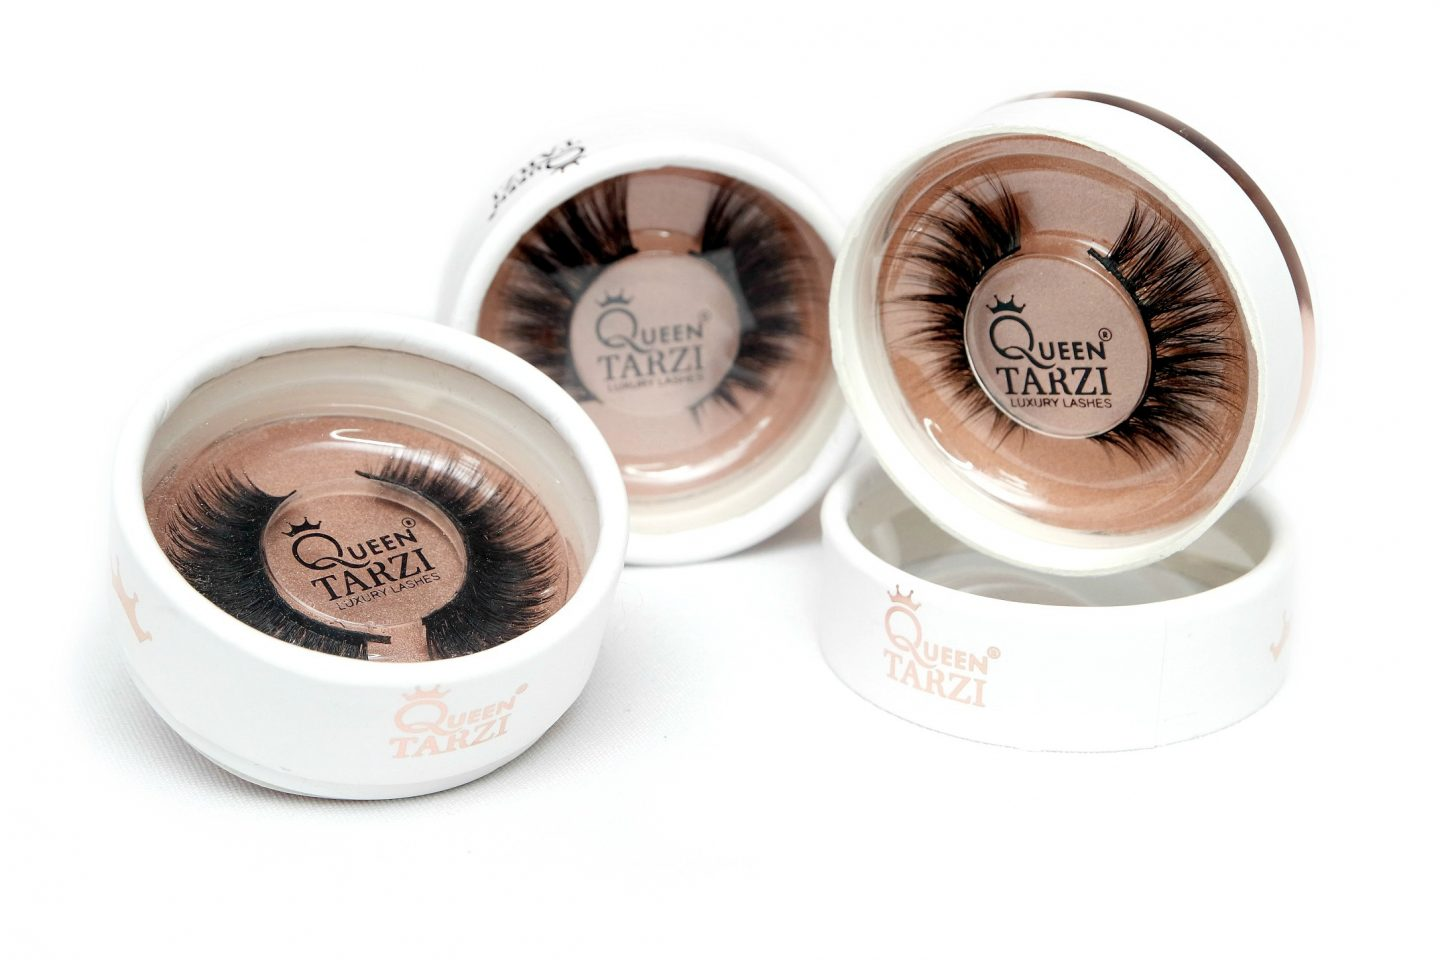 Queen Tarzi Luxury Lashes Review